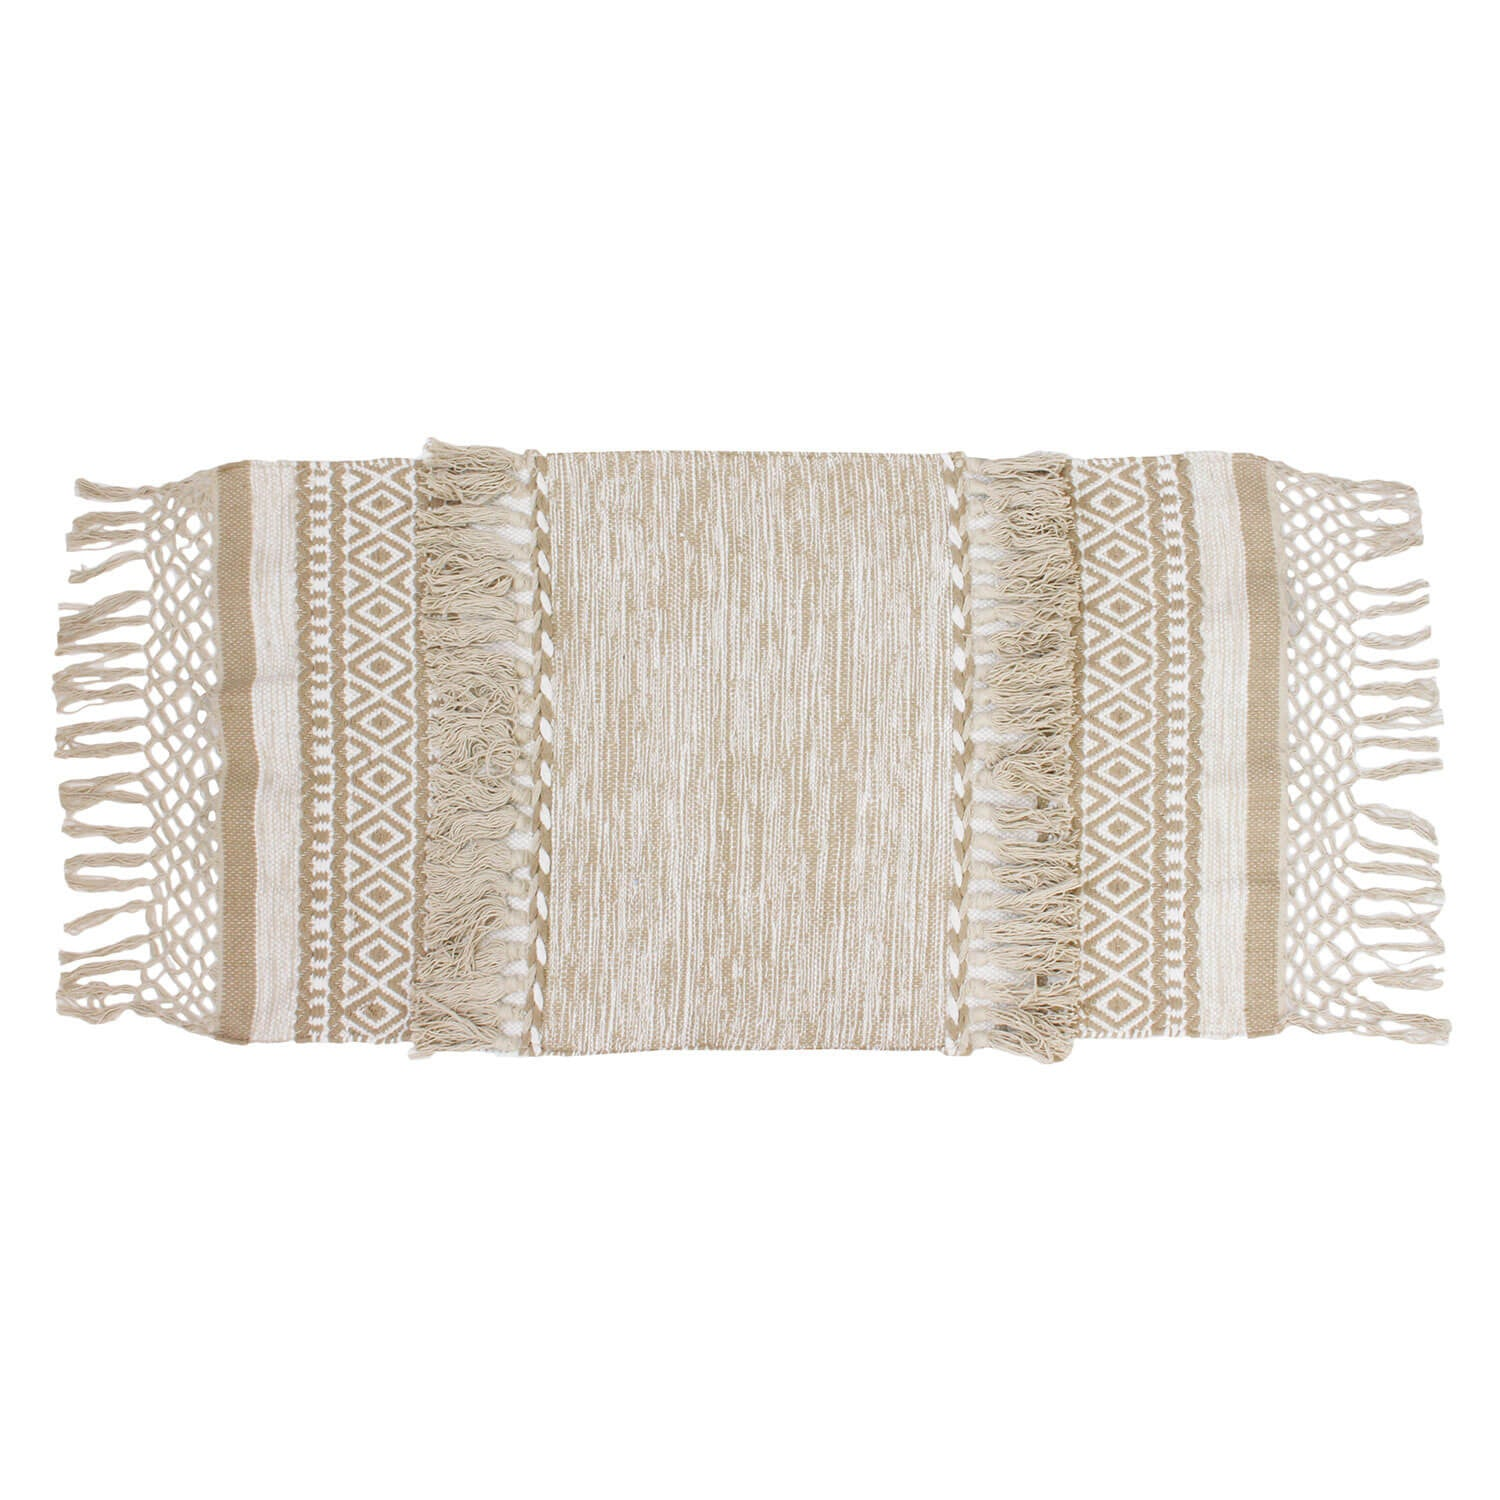 Venice Hand Woven Tassel Accent Rug - Natural